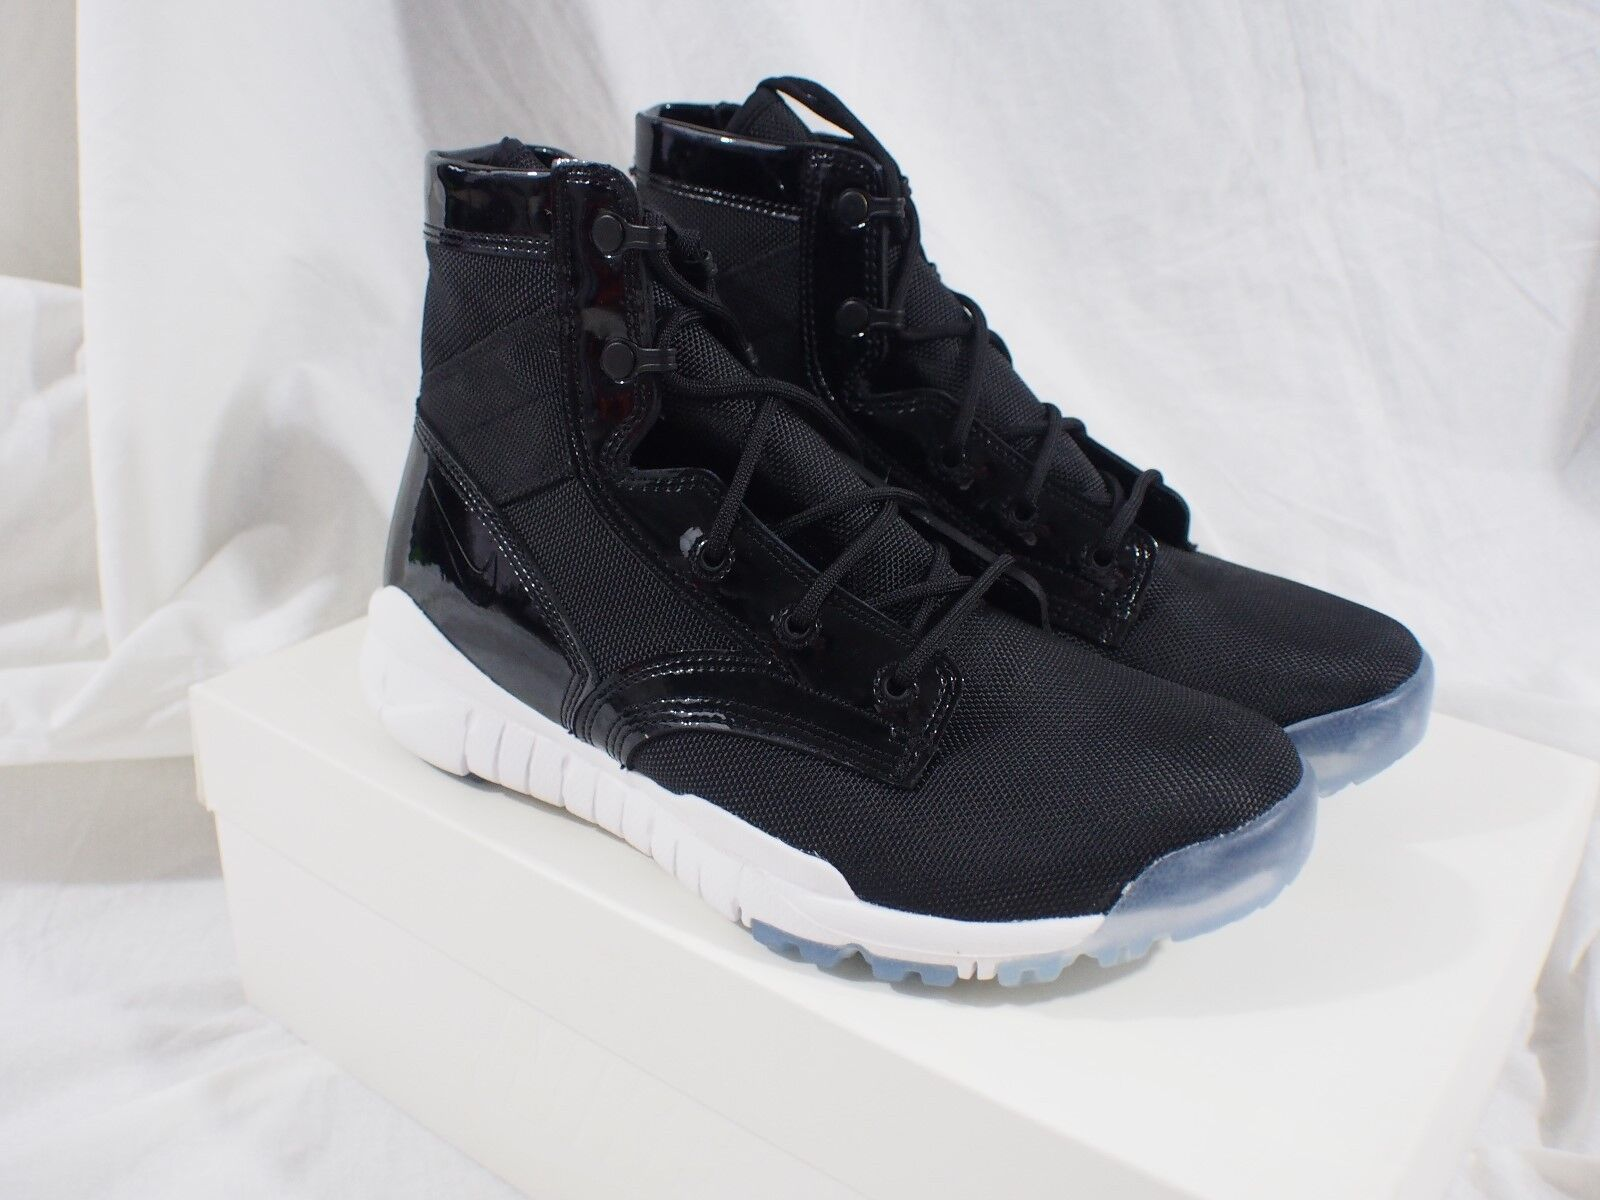 Nike NikeLab SFB Space Jam Special Field Boot 6  729488-001